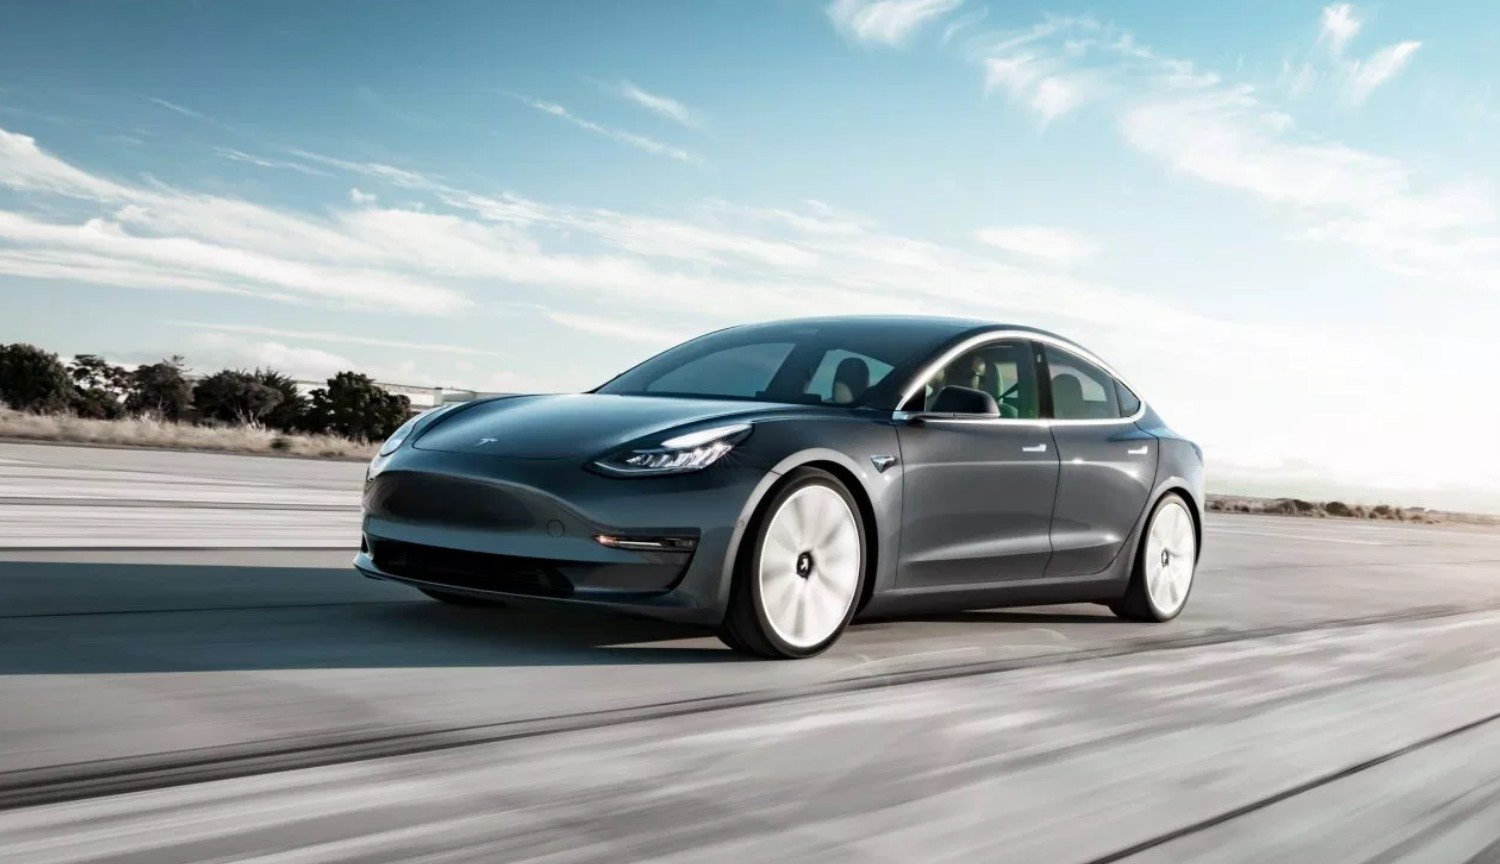 Elon Musk has announced the release of the cheapest version of Tesla Model 3